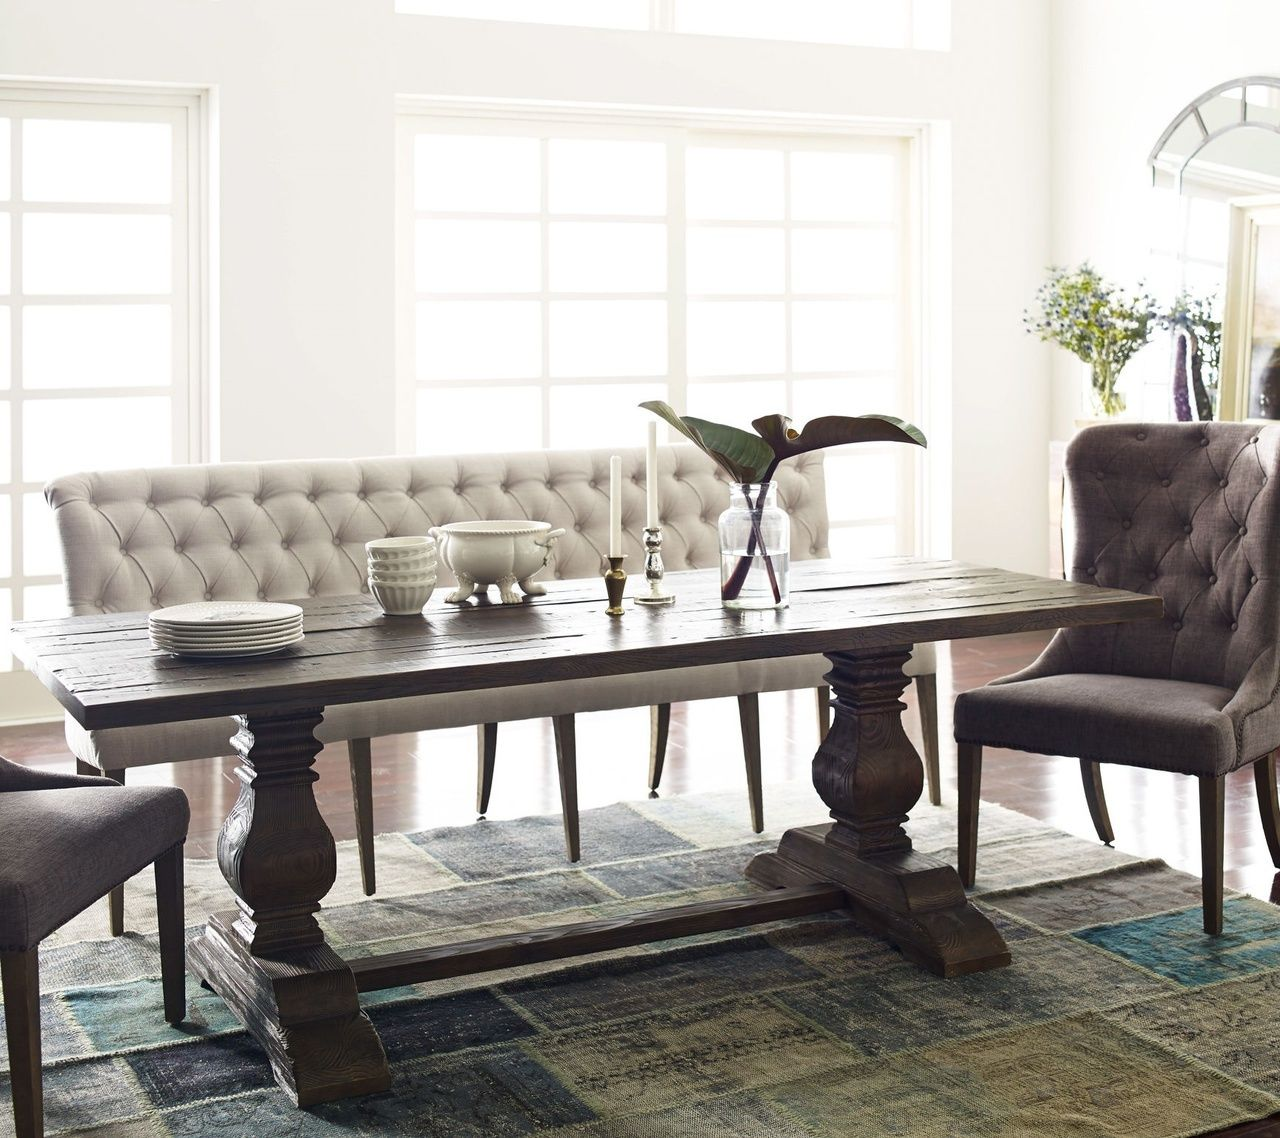 French Tufted Upholstered Dining Bench Banquette In 2019